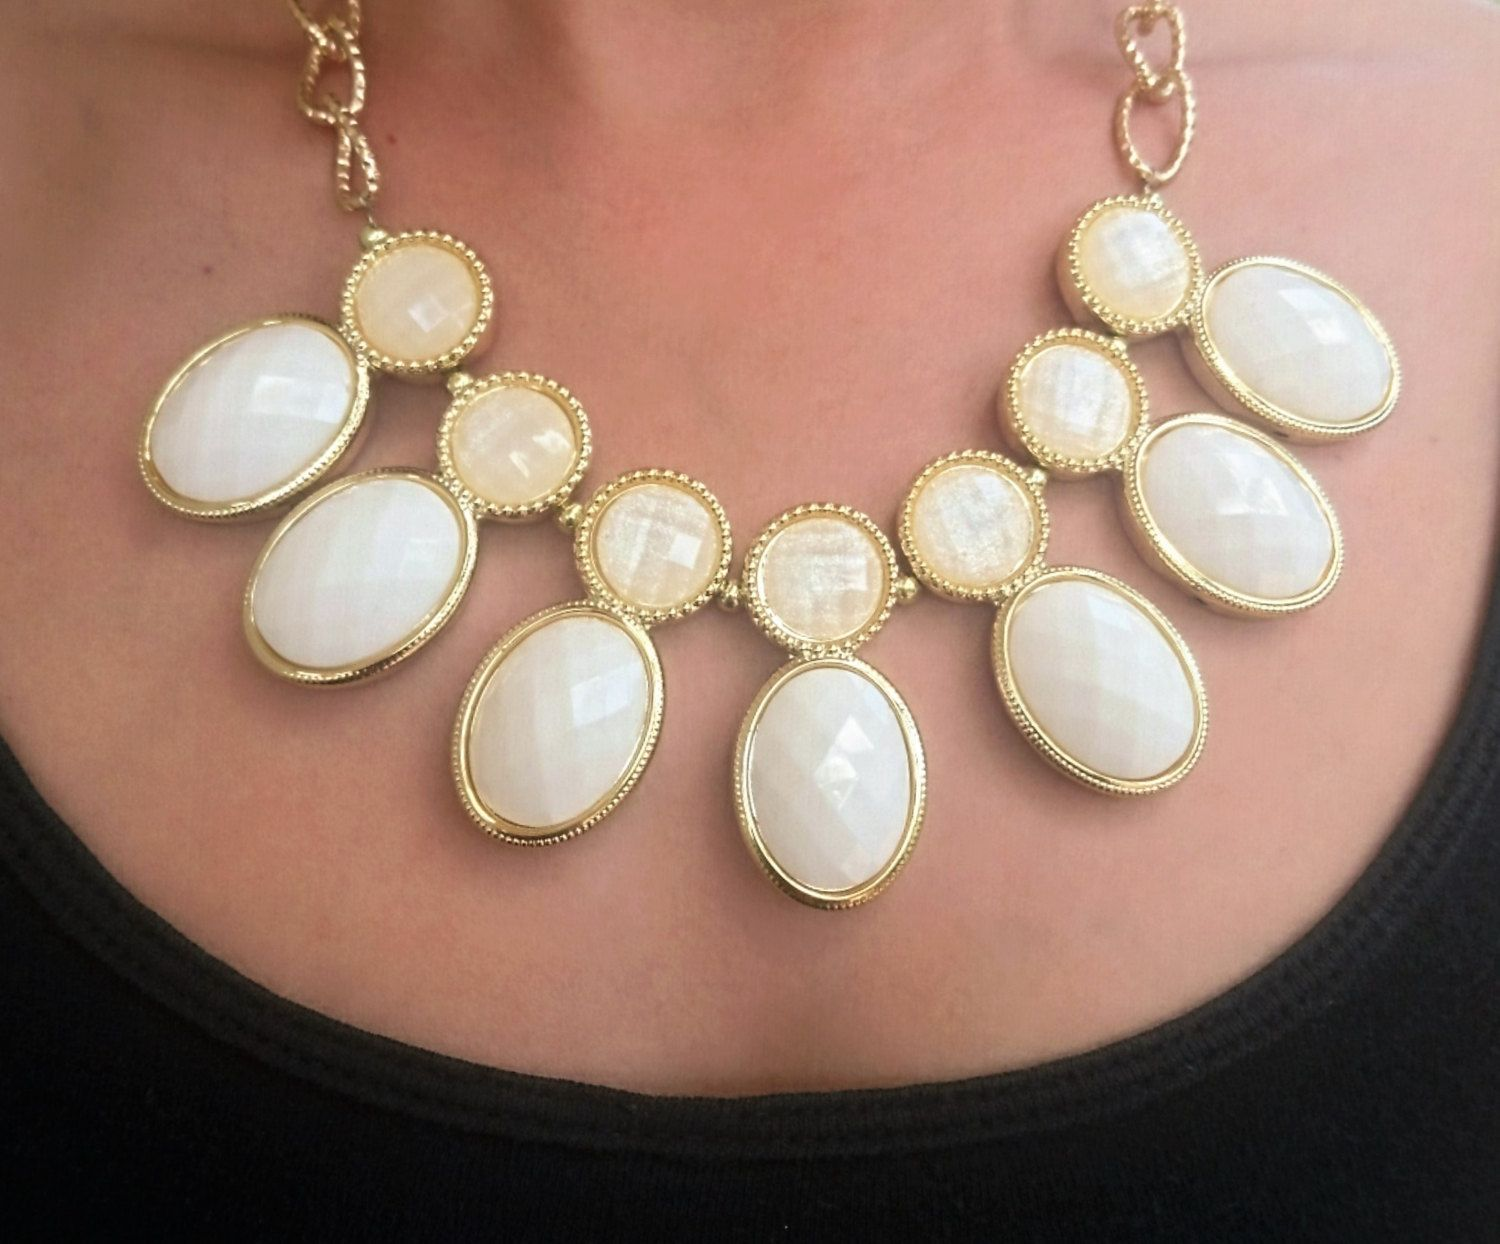 Ivory stone necklace and bracelet set by trendfinity on etsy